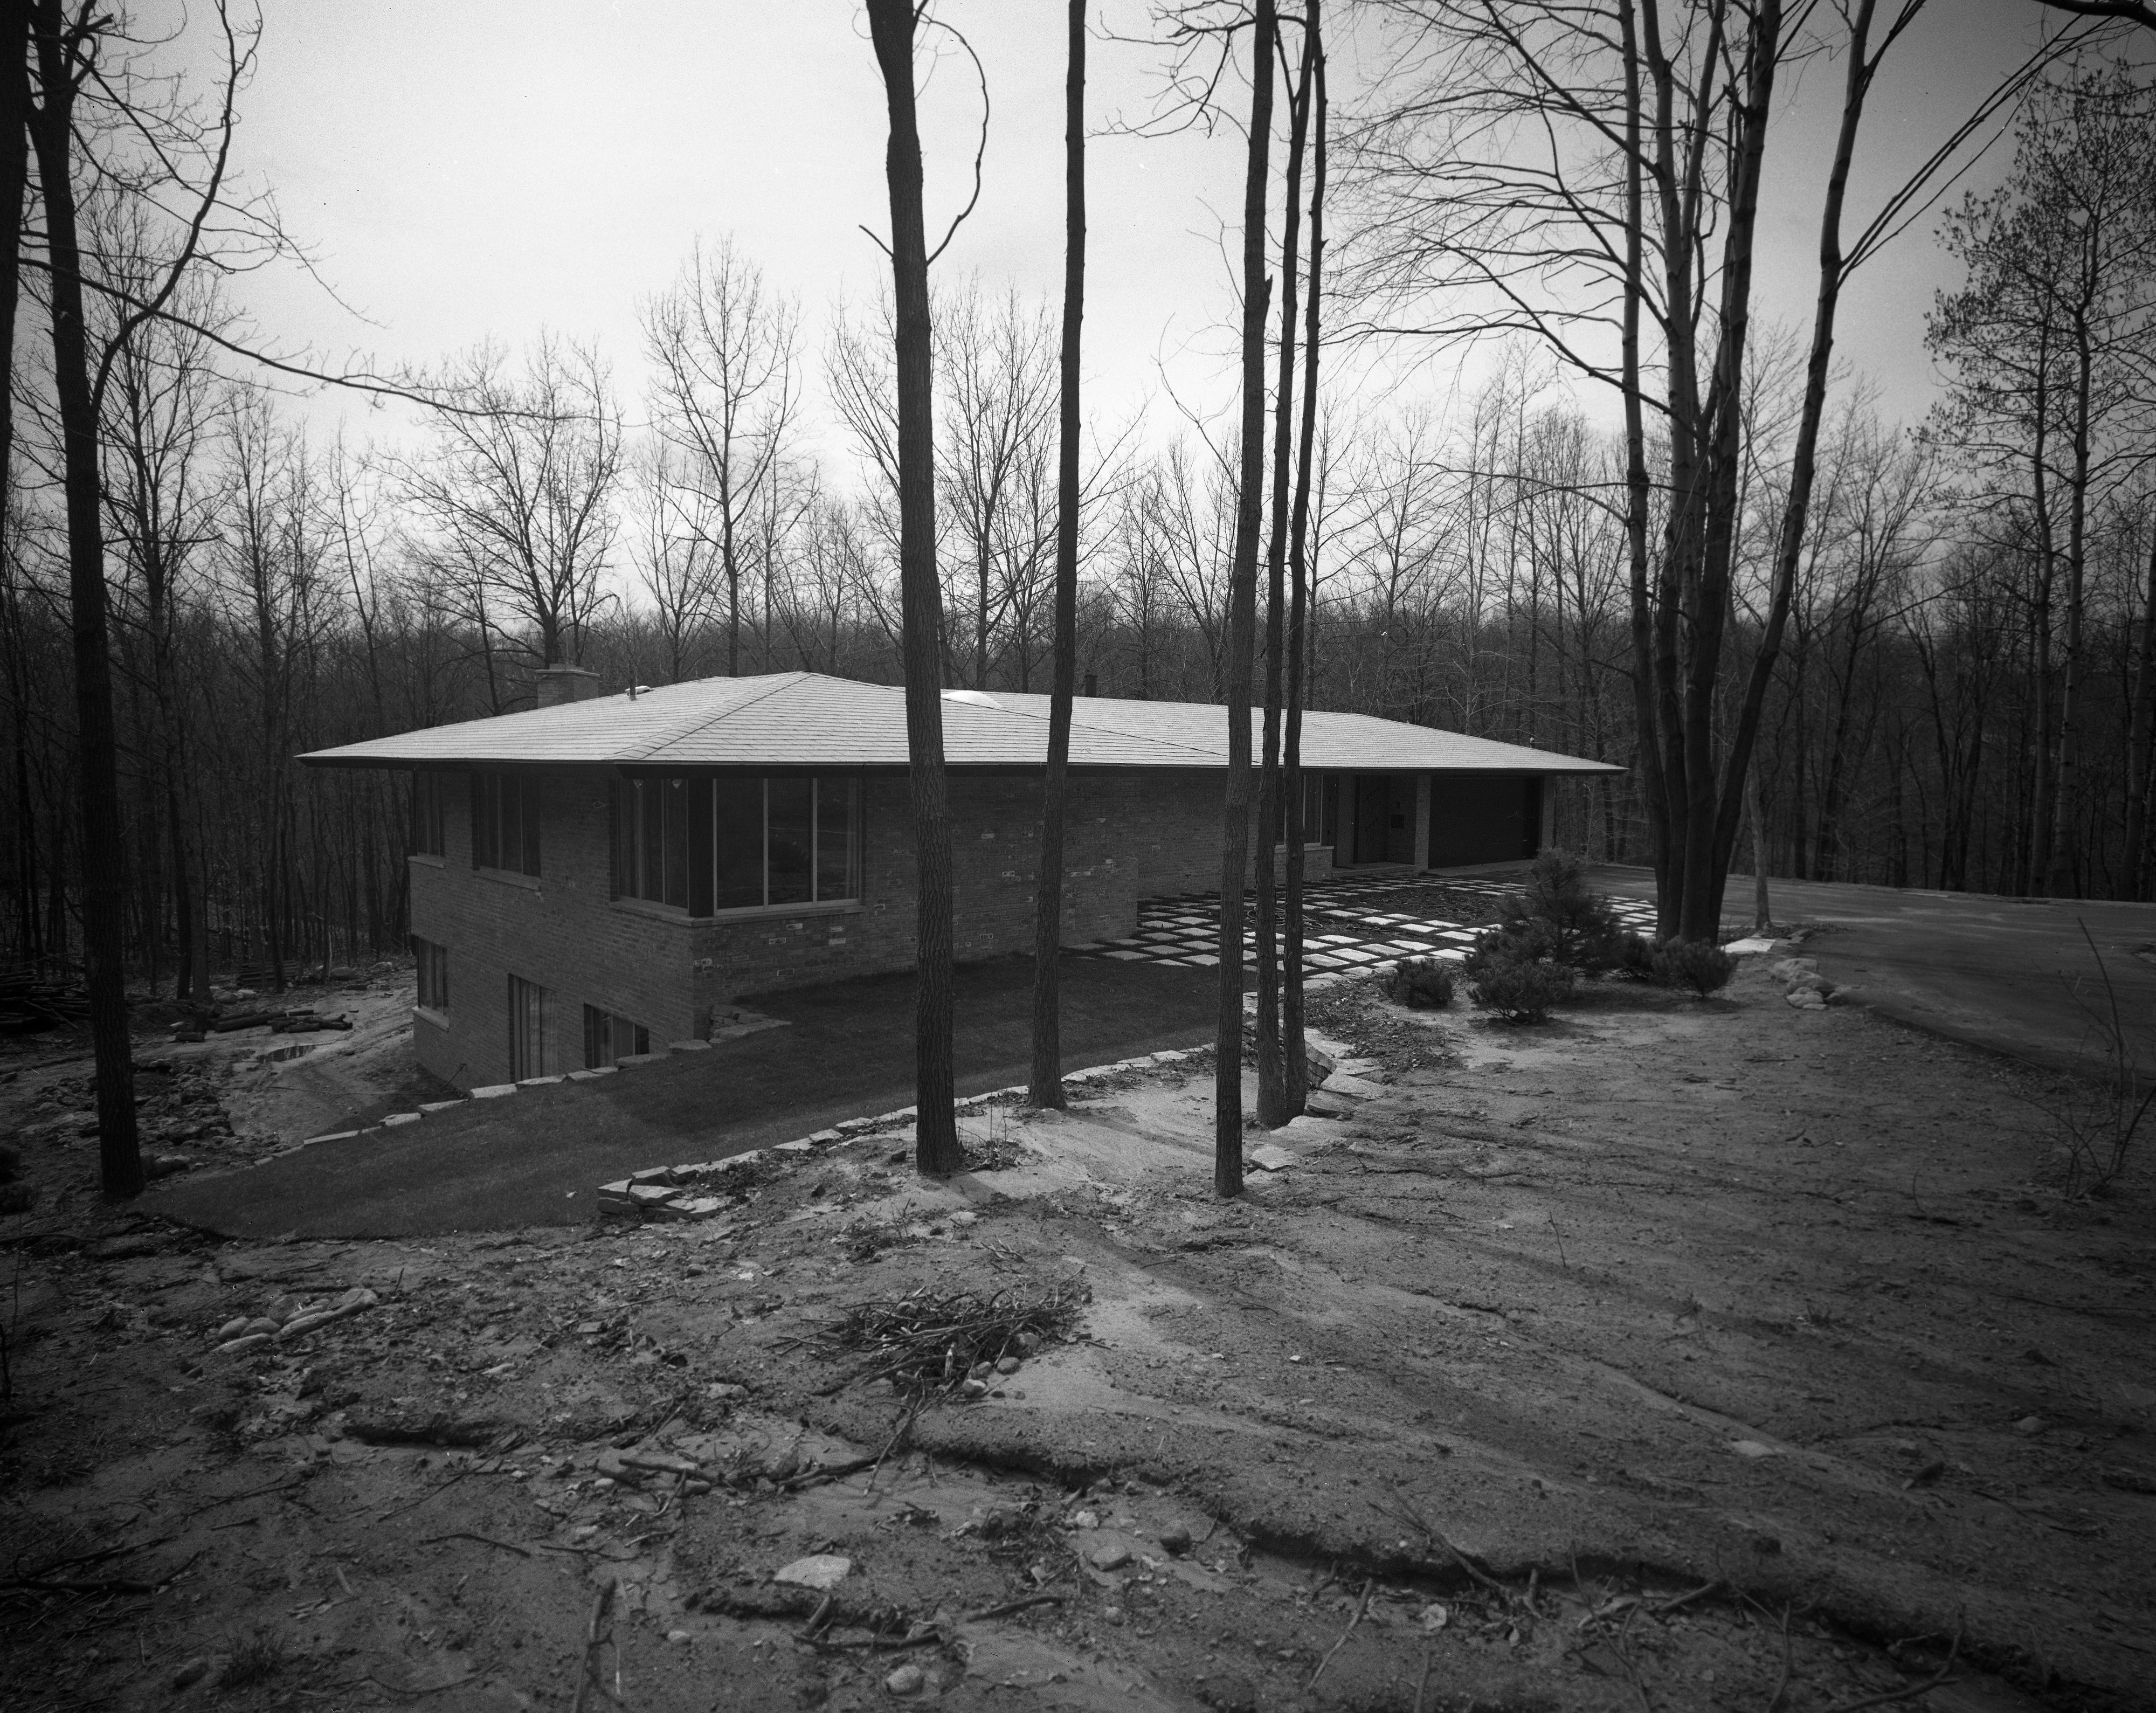 Holmes Mid-Century Modern Home On N Barton Dr., April 1961 image